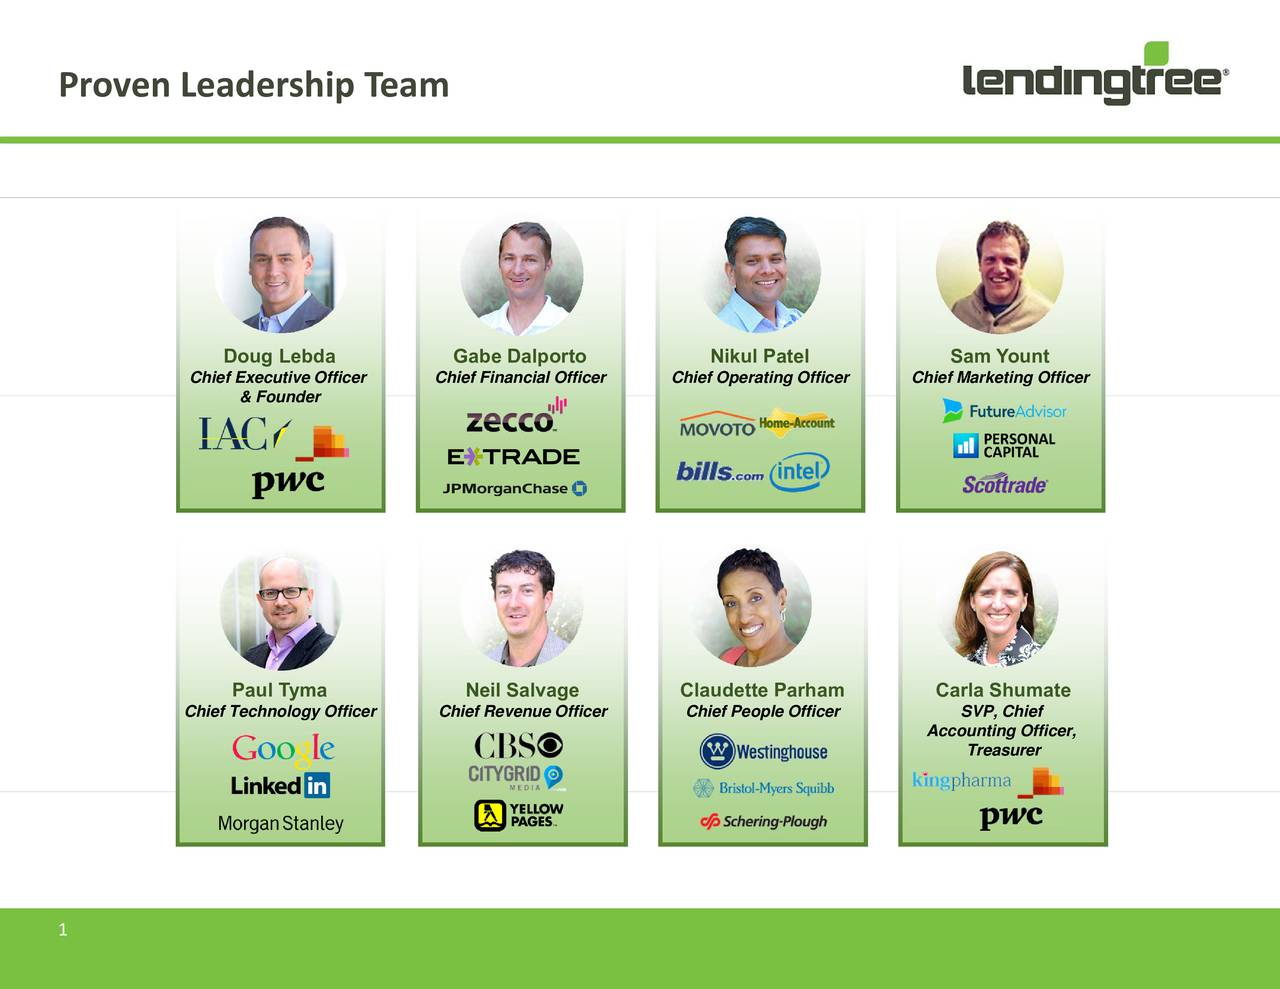 Sam Yount Carla Shumate Accounting Officer, Chief Marketing Officer Nikul Patel Chief Operating Officer Claudette Parhamfficer Neil Salvage Gabe Dalporto Chief Financial Officer Chief Revenue Officer & Founder Doug Lebda Paul Tyma Chief Executive Officer Chief Technology Officer ProvenLeadershipTeam 1